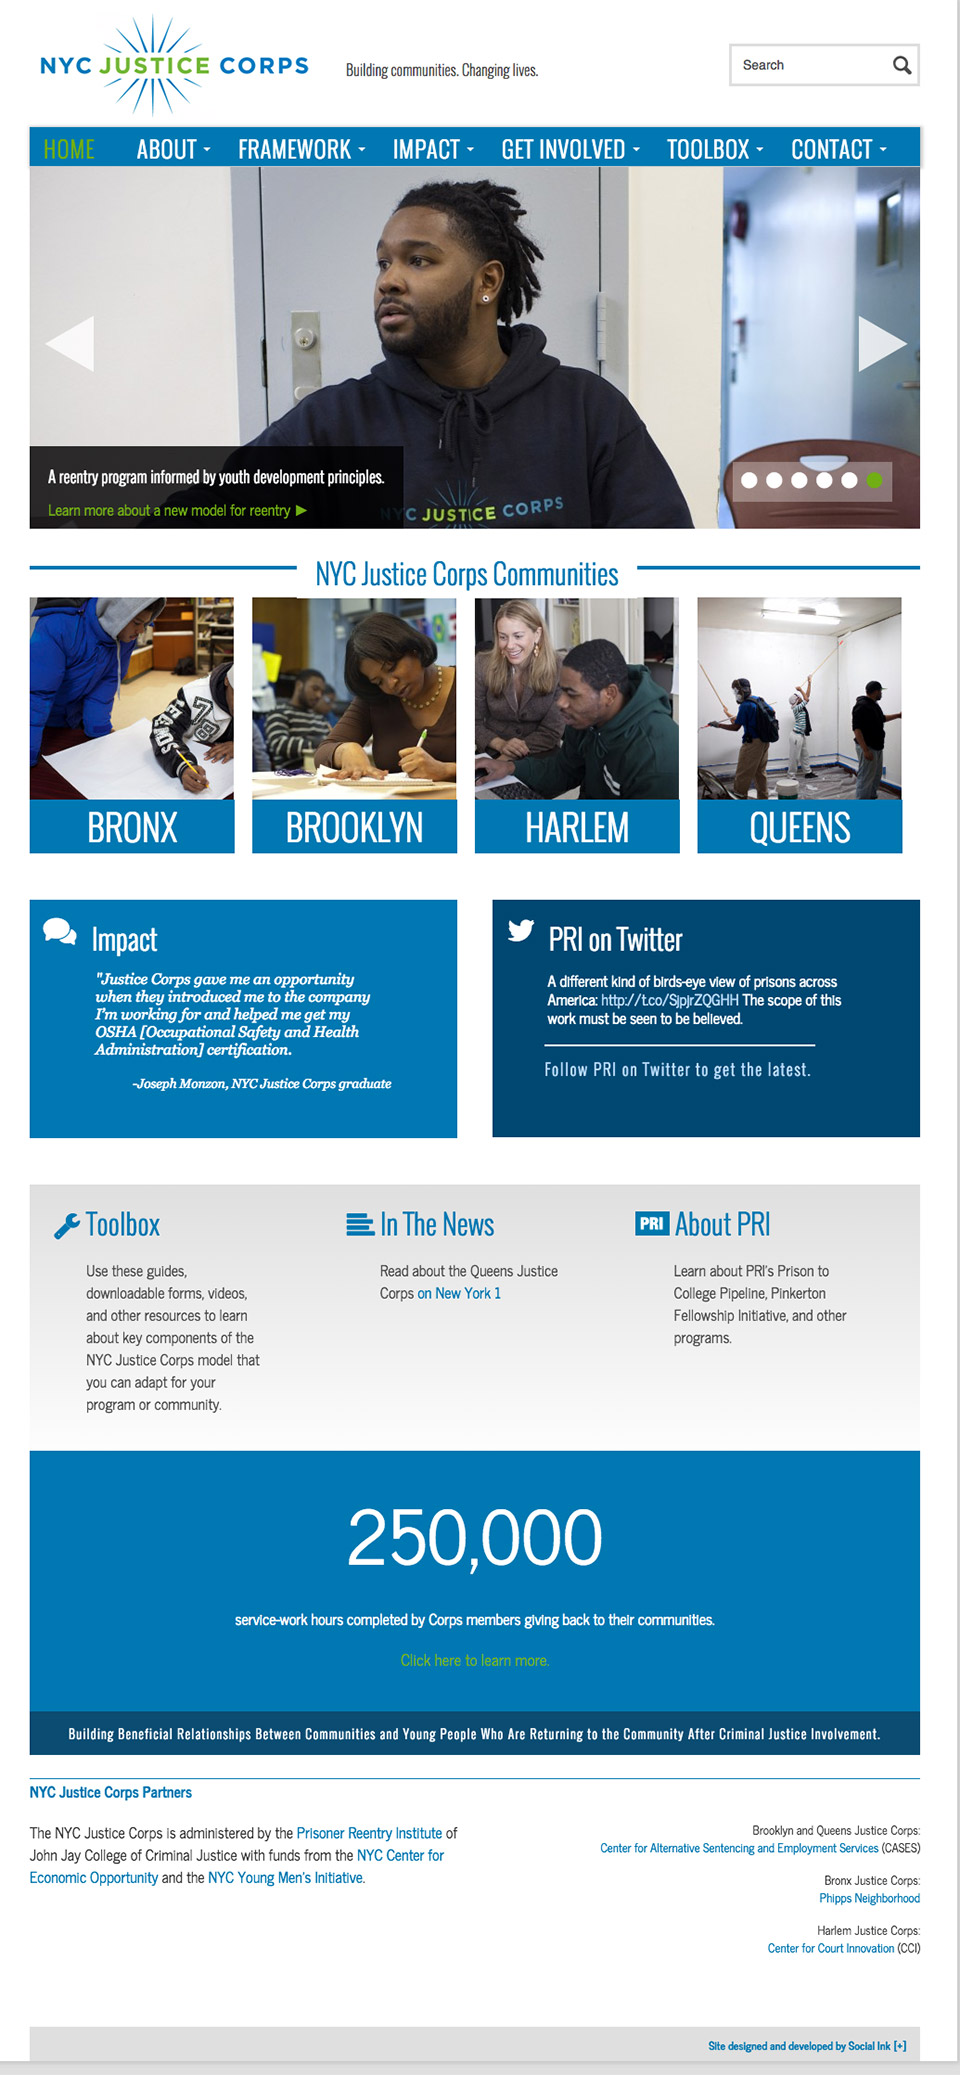 NYC Justice Corps: NYC Justice Corps Program Overview Page